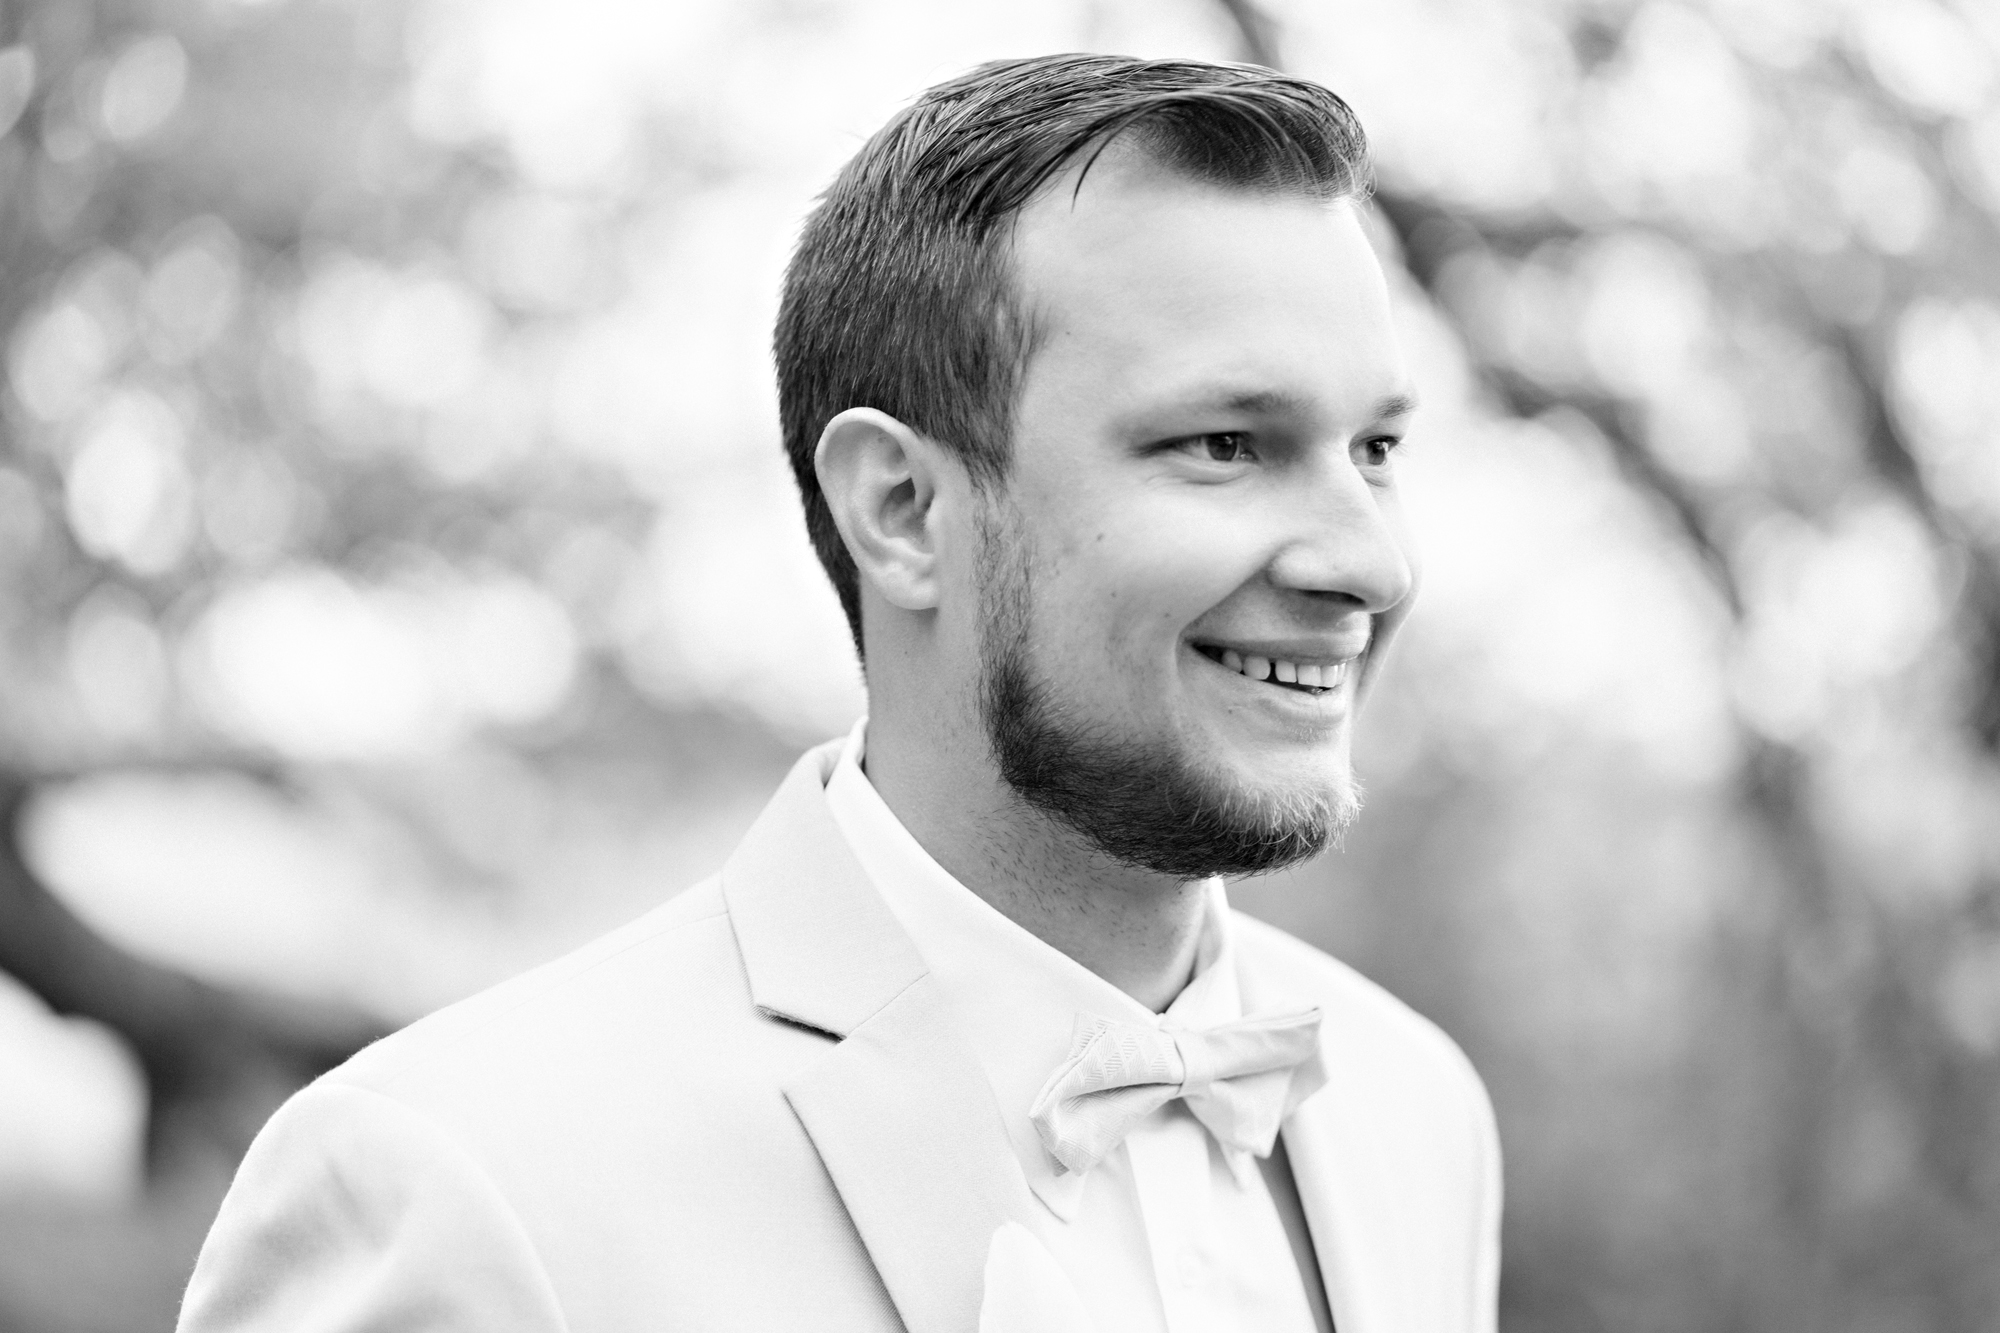 Fairhope-Alabama-Wedding-Photographers-Nick-Drollette-Photography-126.jpg